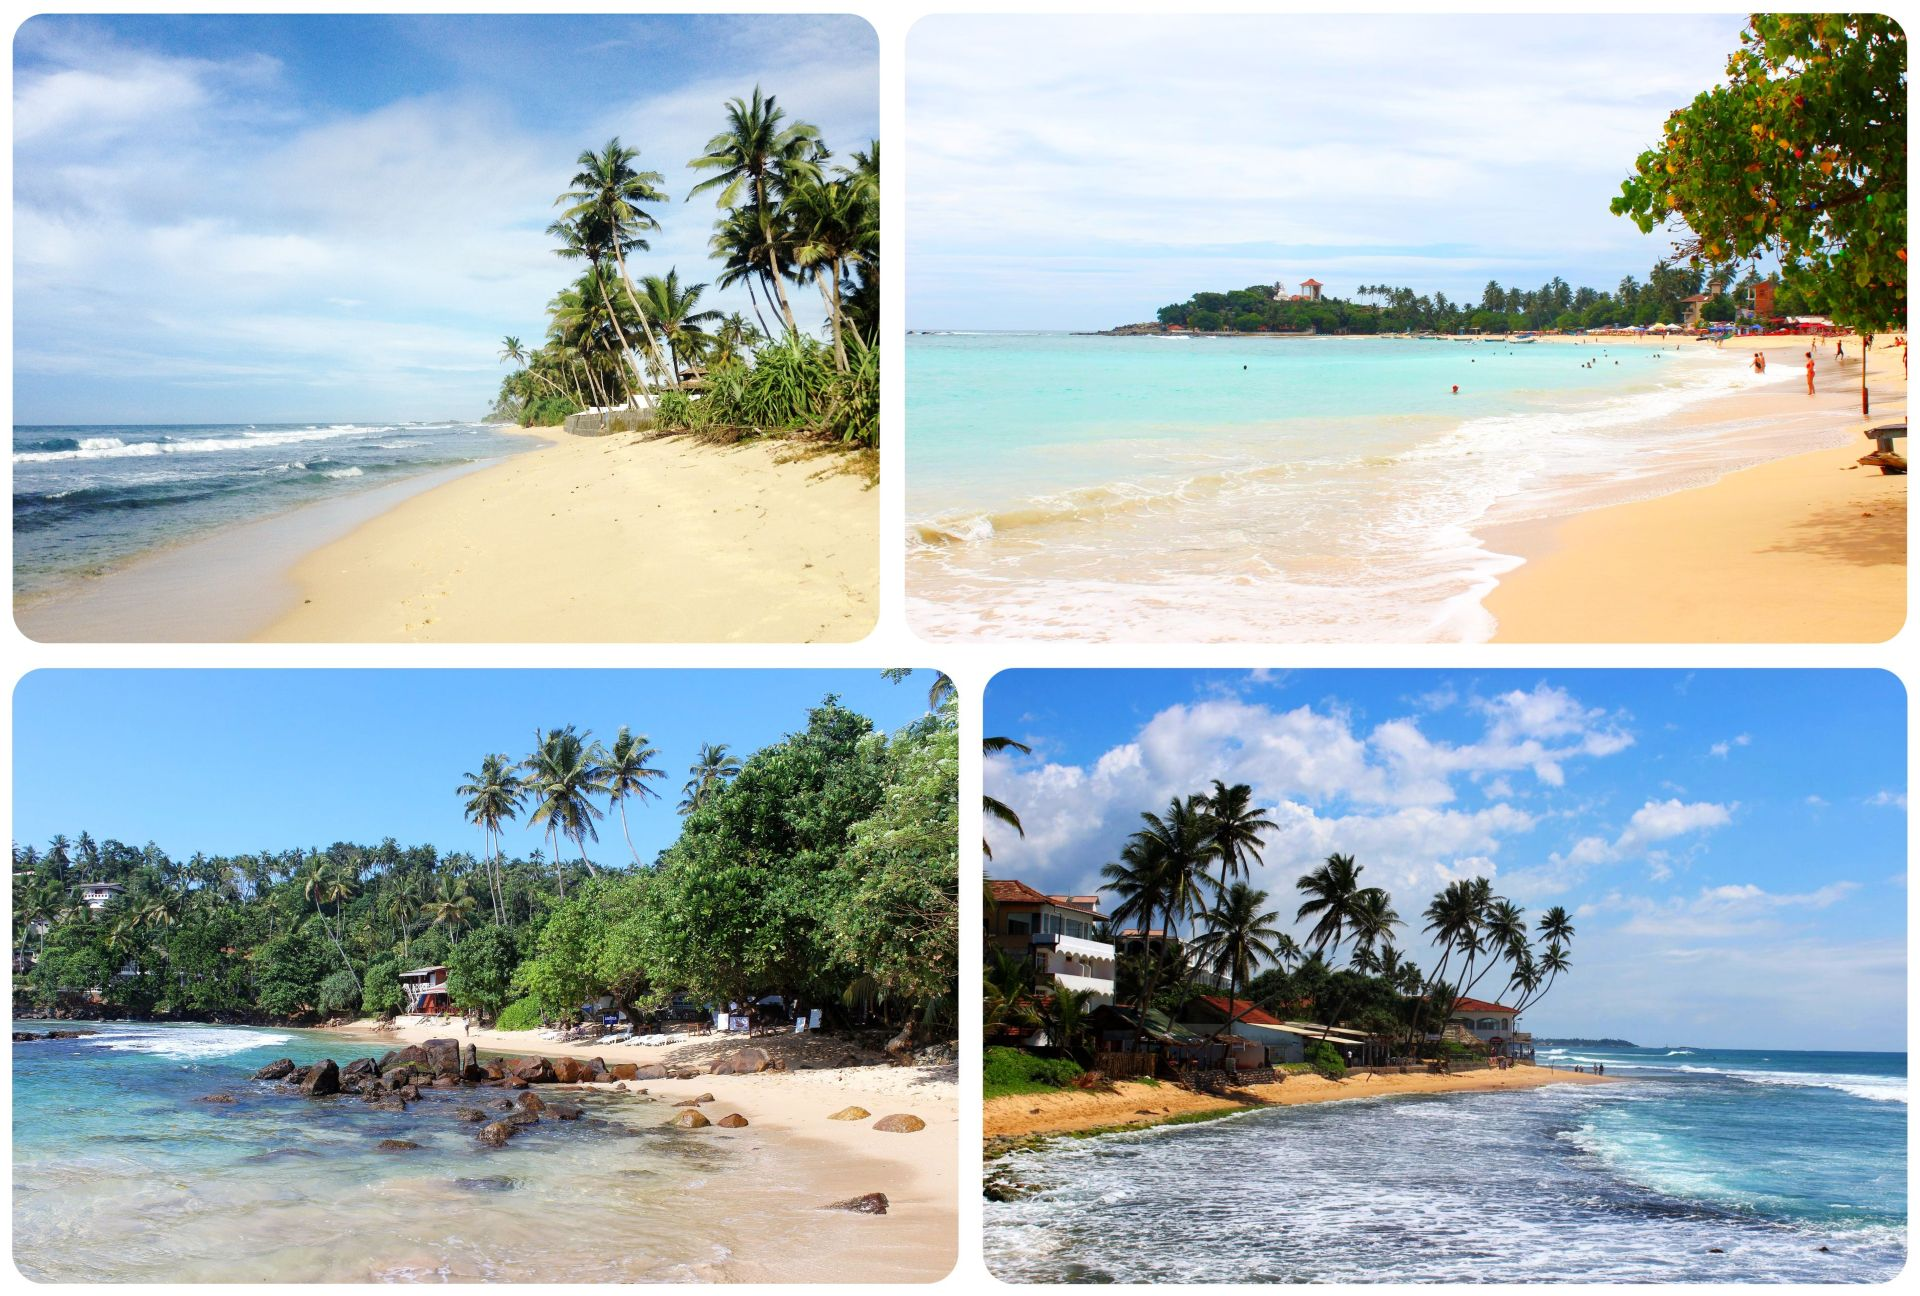 Sri Lanka Beaches